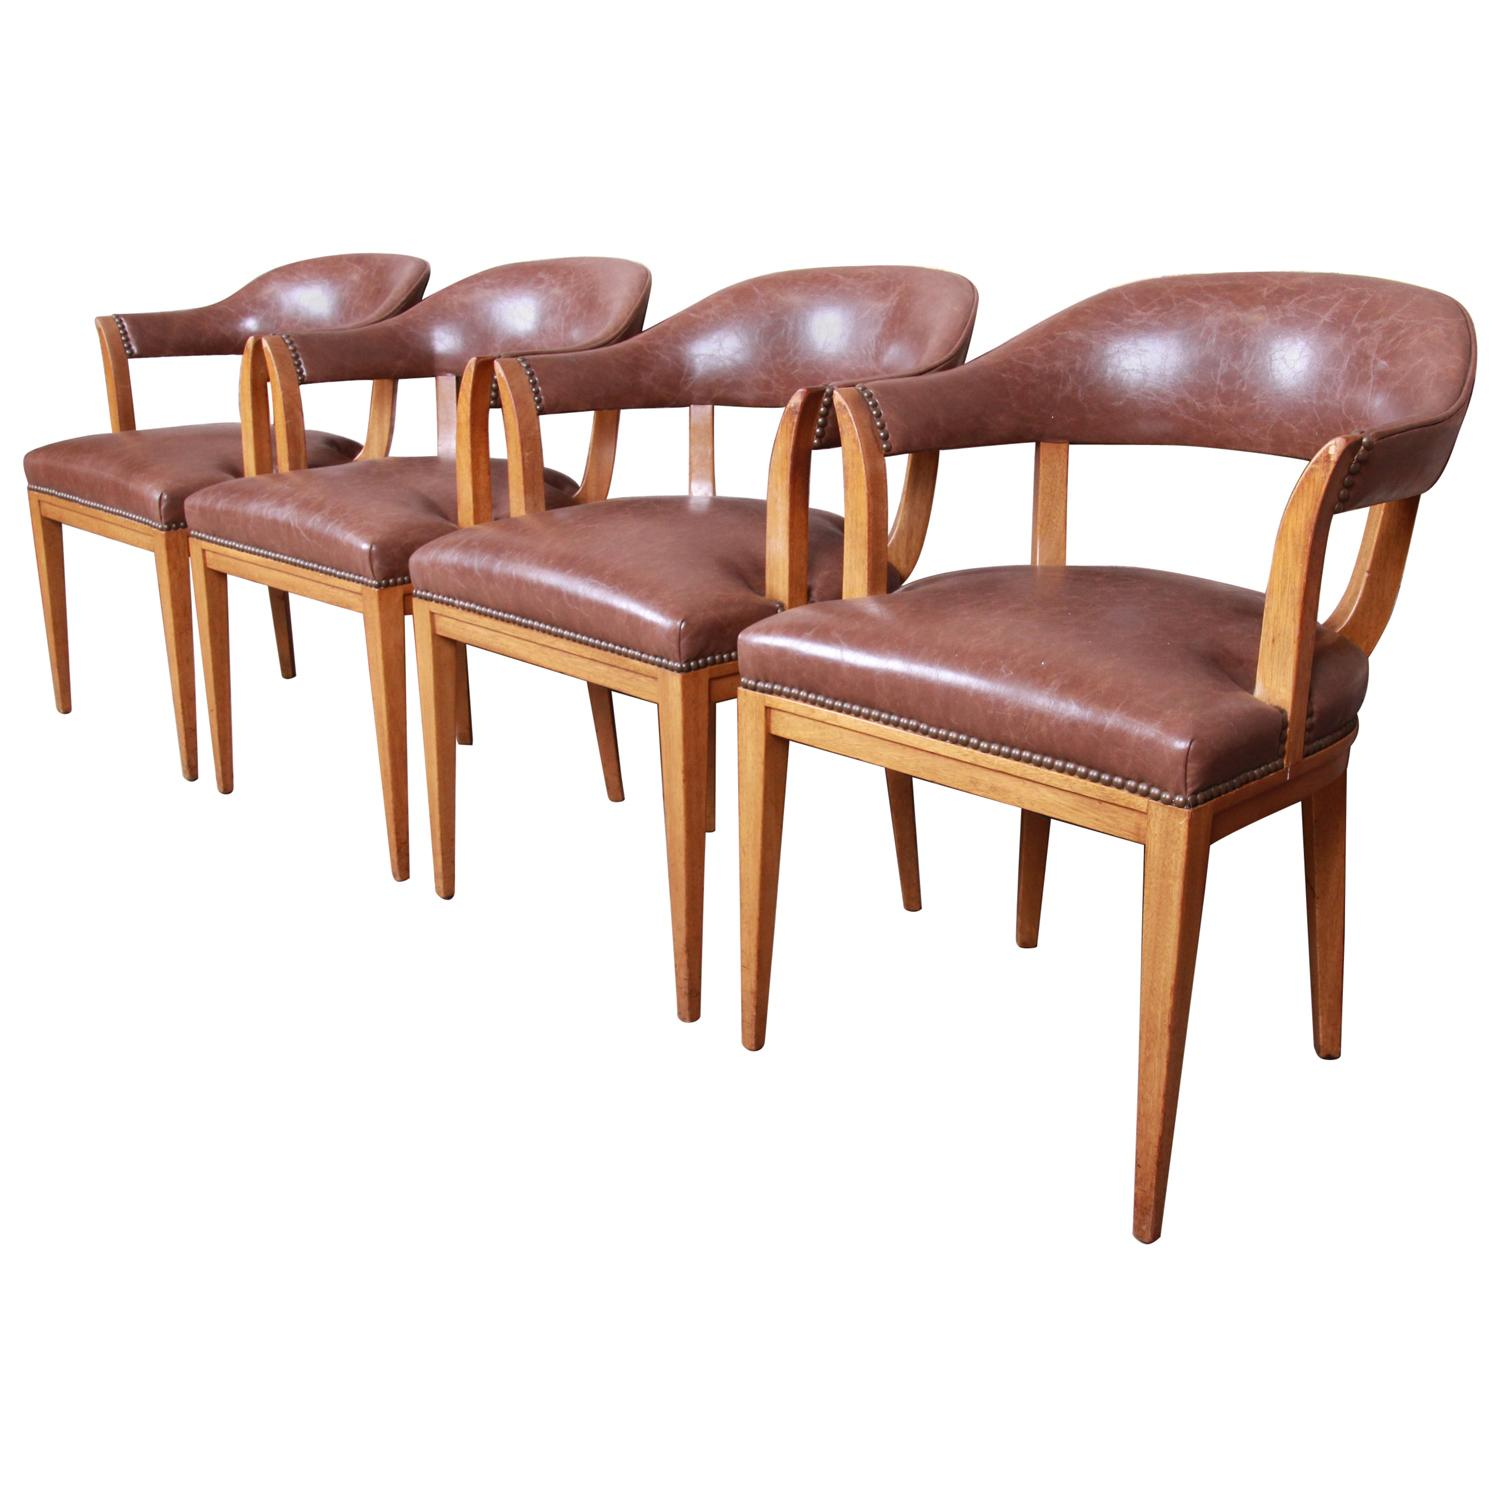 Edward Wormley for Dunbar Janus Collection Leather Dining Chairs, Set of Four